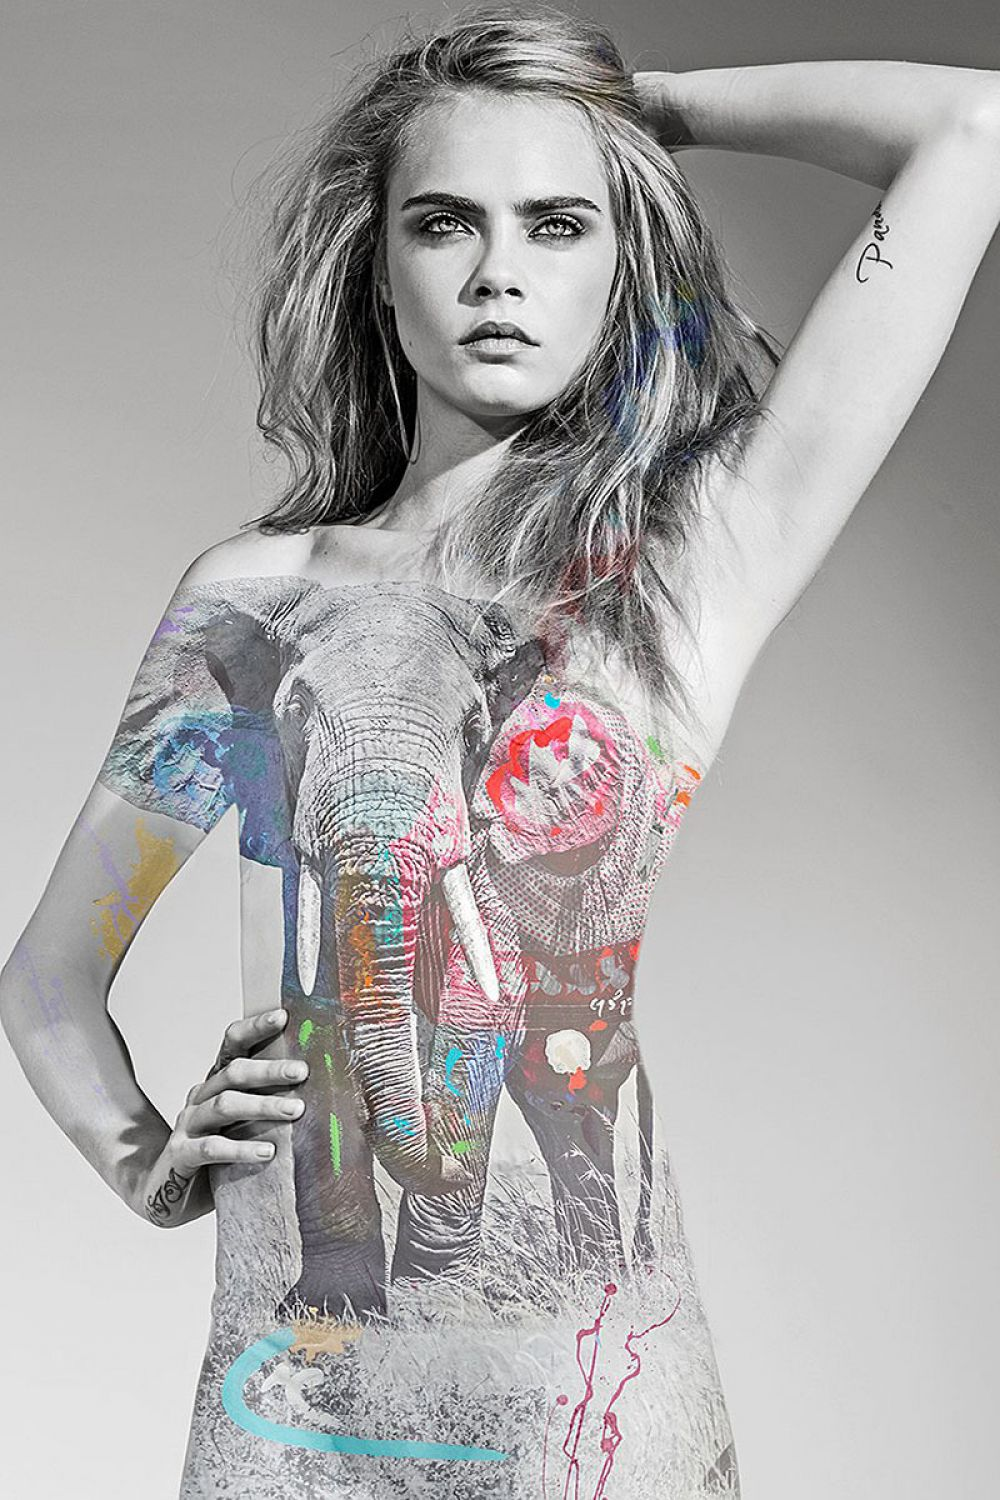 CARA DELEVINGNE for 'I Am Not A Trophy Campaign' - HawtCelebs